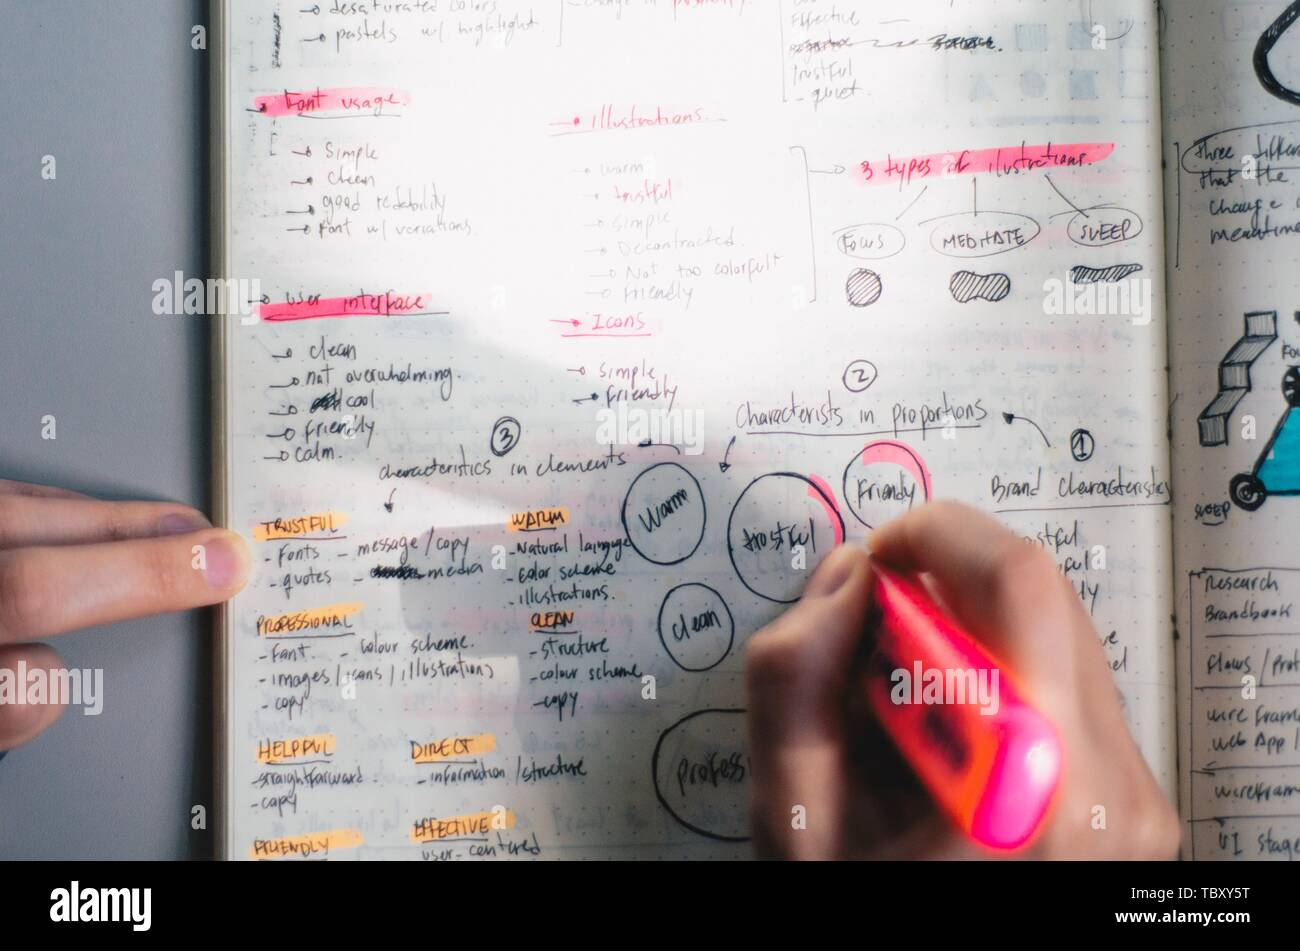 A person's hand, writing down some drafts for the project with a marker - Stock Image